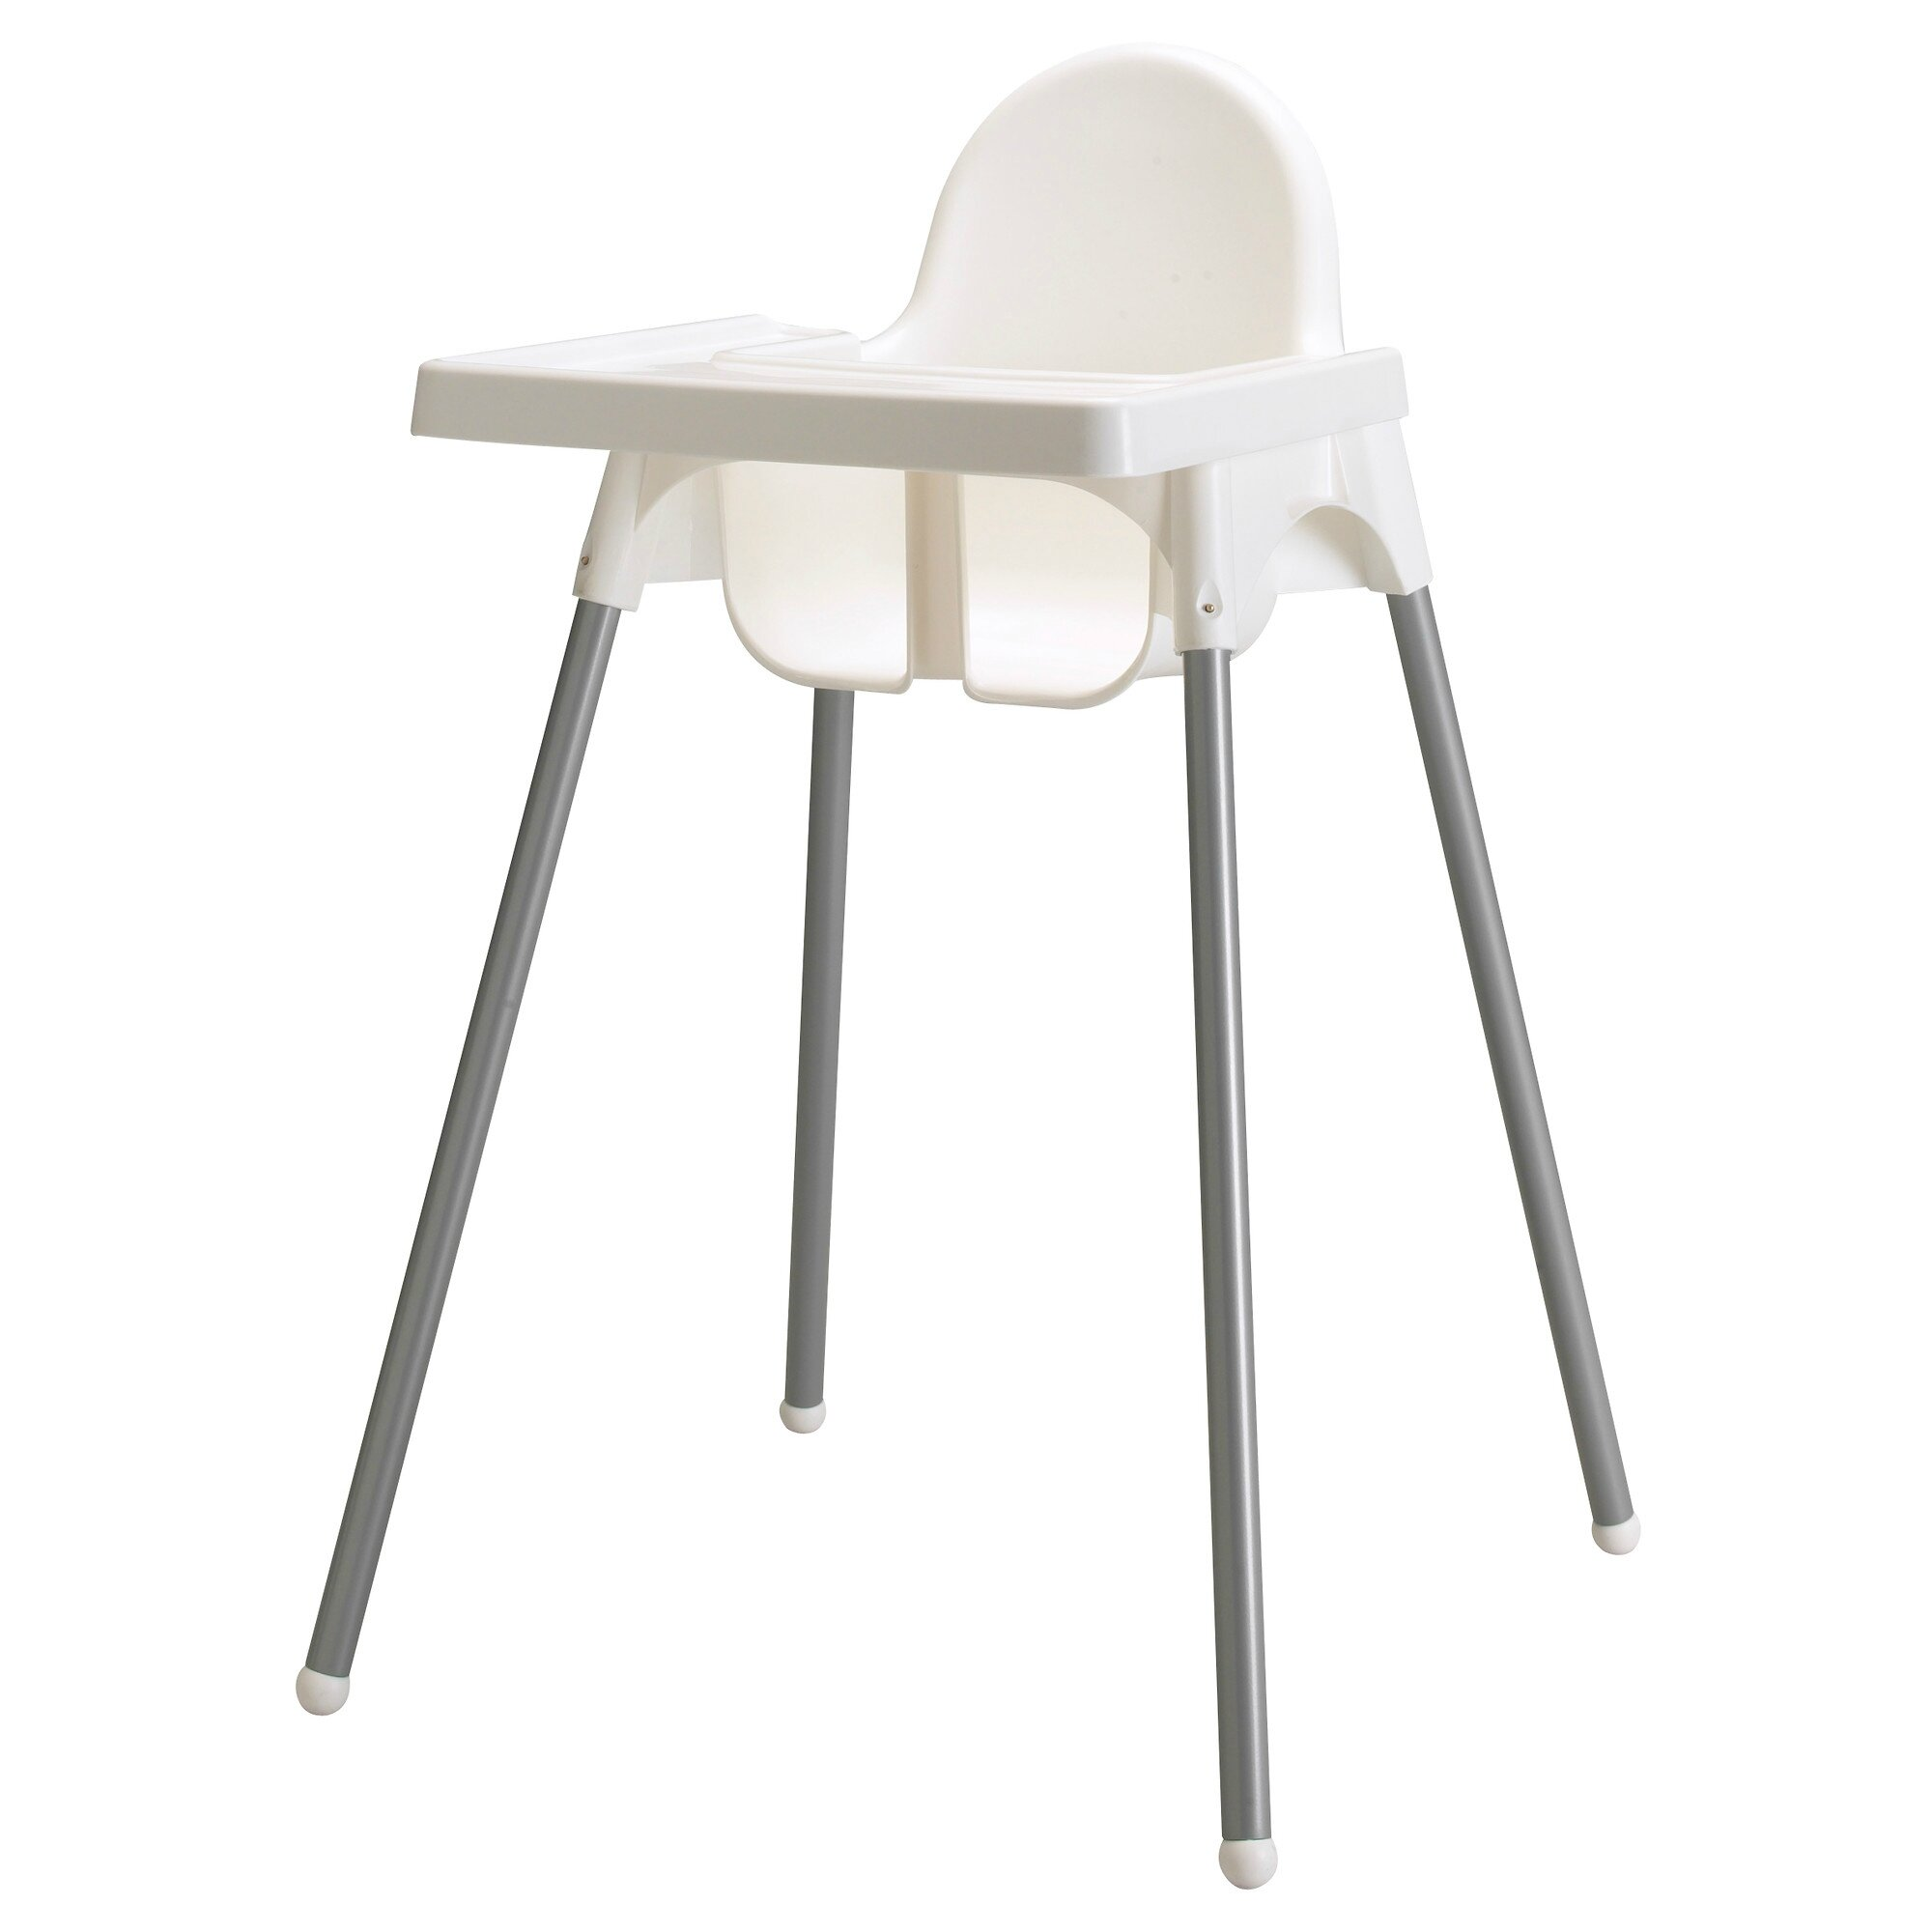 Chaise haute cuisine ikea estelle low legs to go with diy for Chaise haute de bar ikea